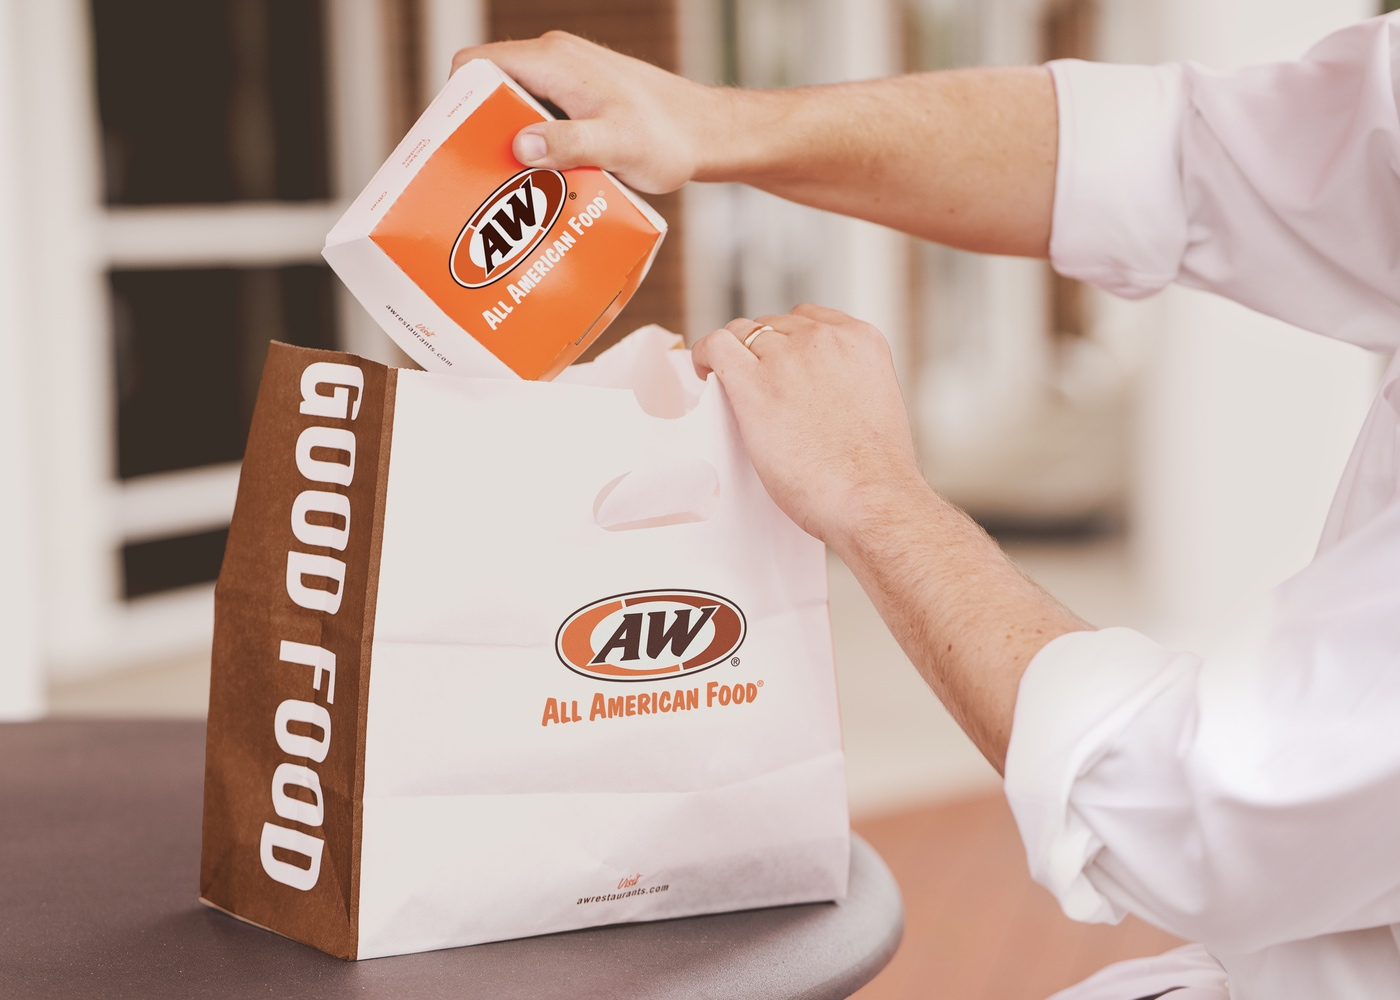 A&W Chicken Tender Box and To-Go Bag missing ampersand from logos